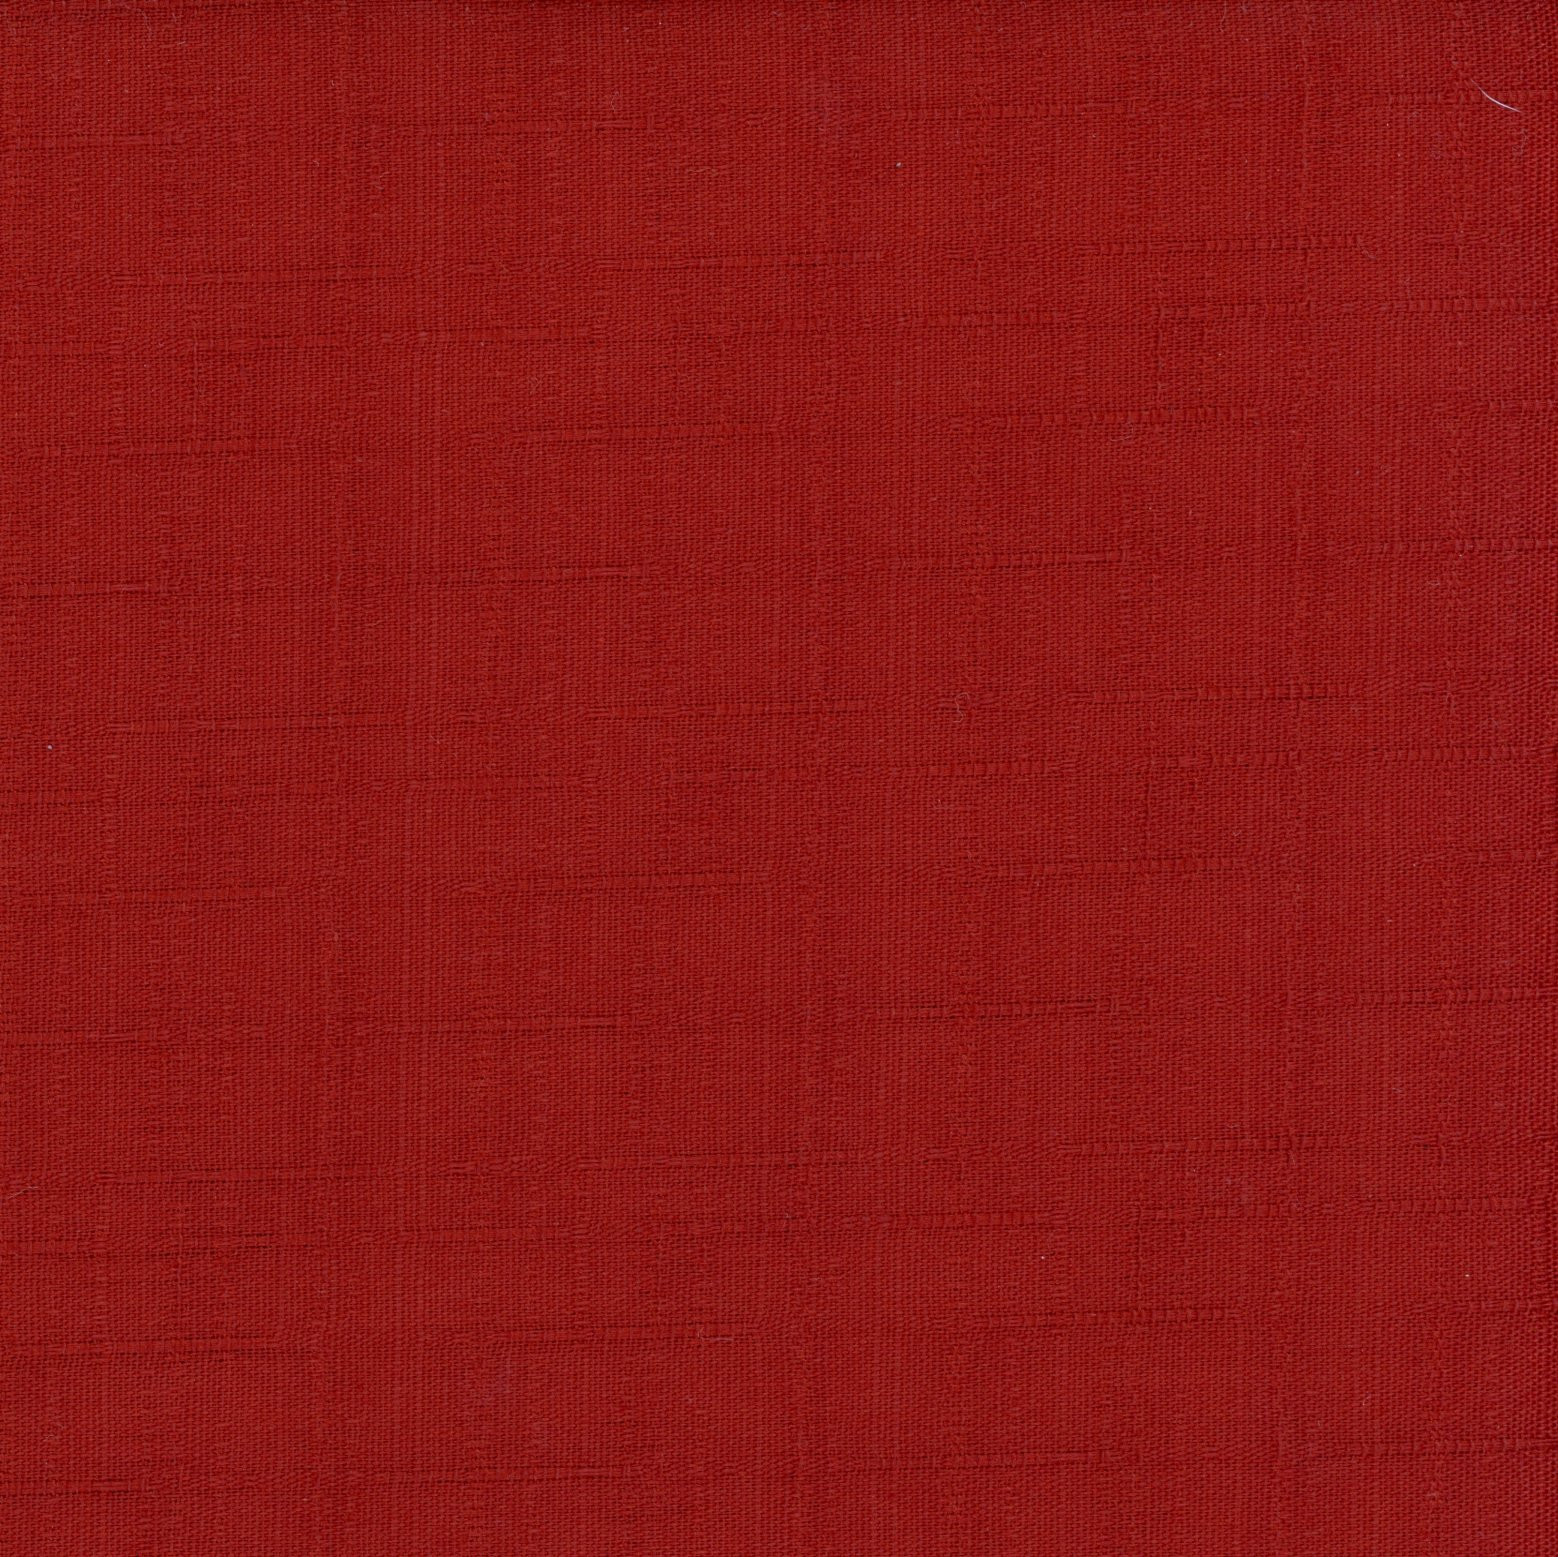 Dobby Weave Red Solid from Kobayashi KC-8260-B